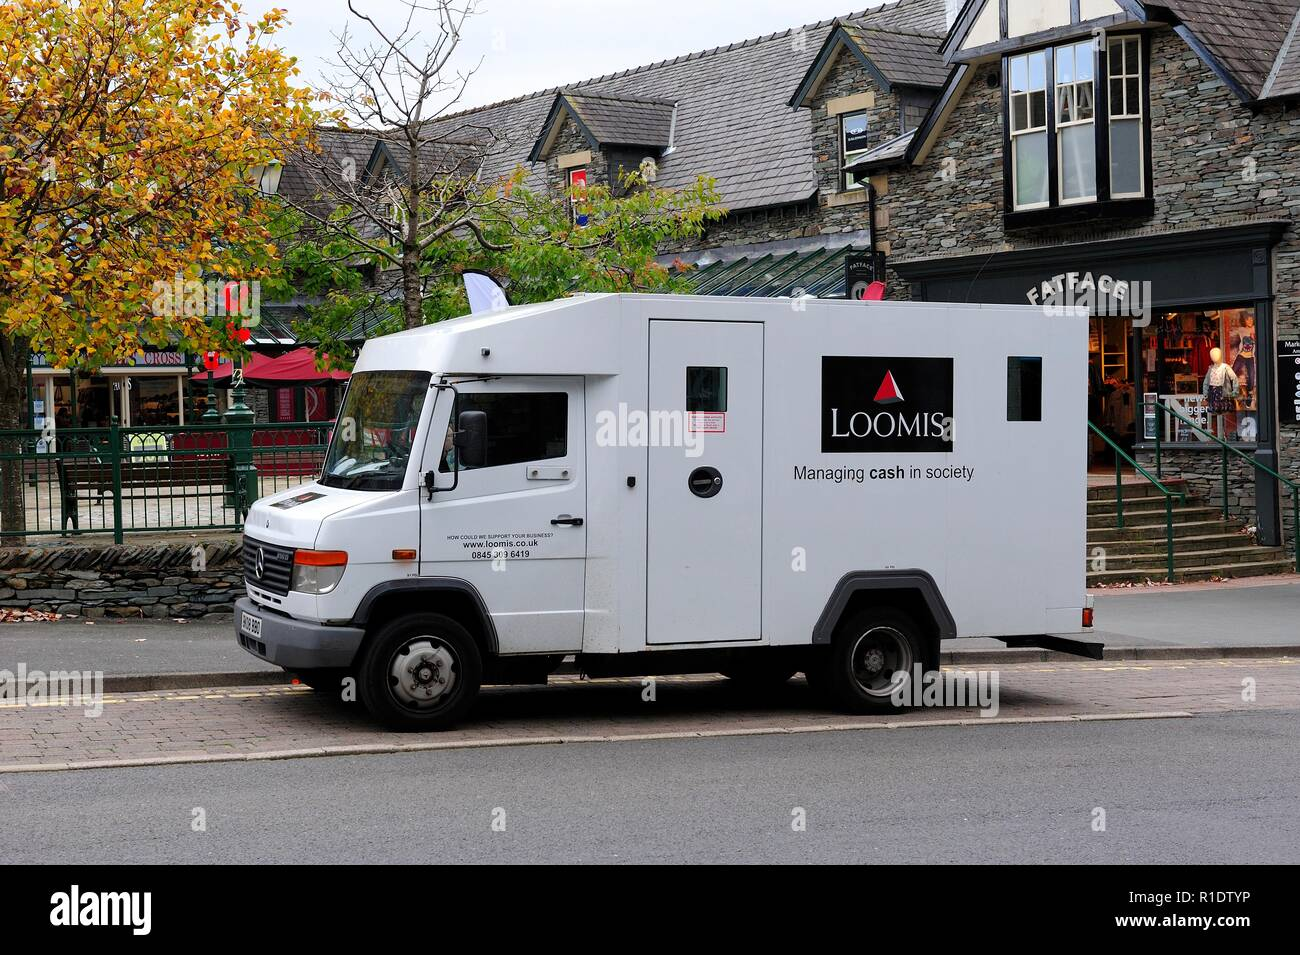 a22ffd9b537252 Loomis Security Stock Photos   Loomis Security Stock Images - Alamy